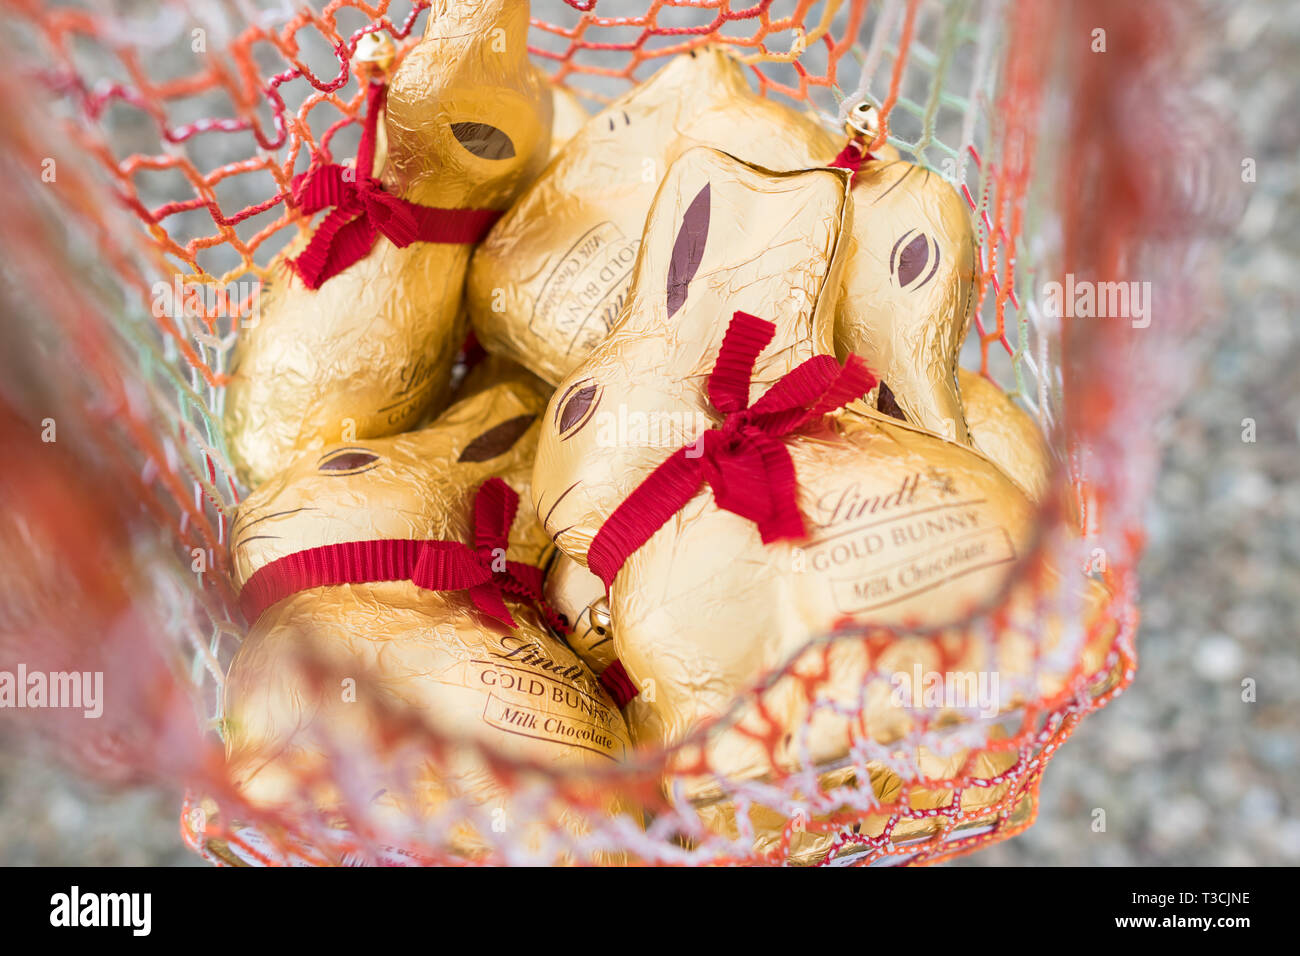 Lindt gold bunnies in shopping bag Stock Photo